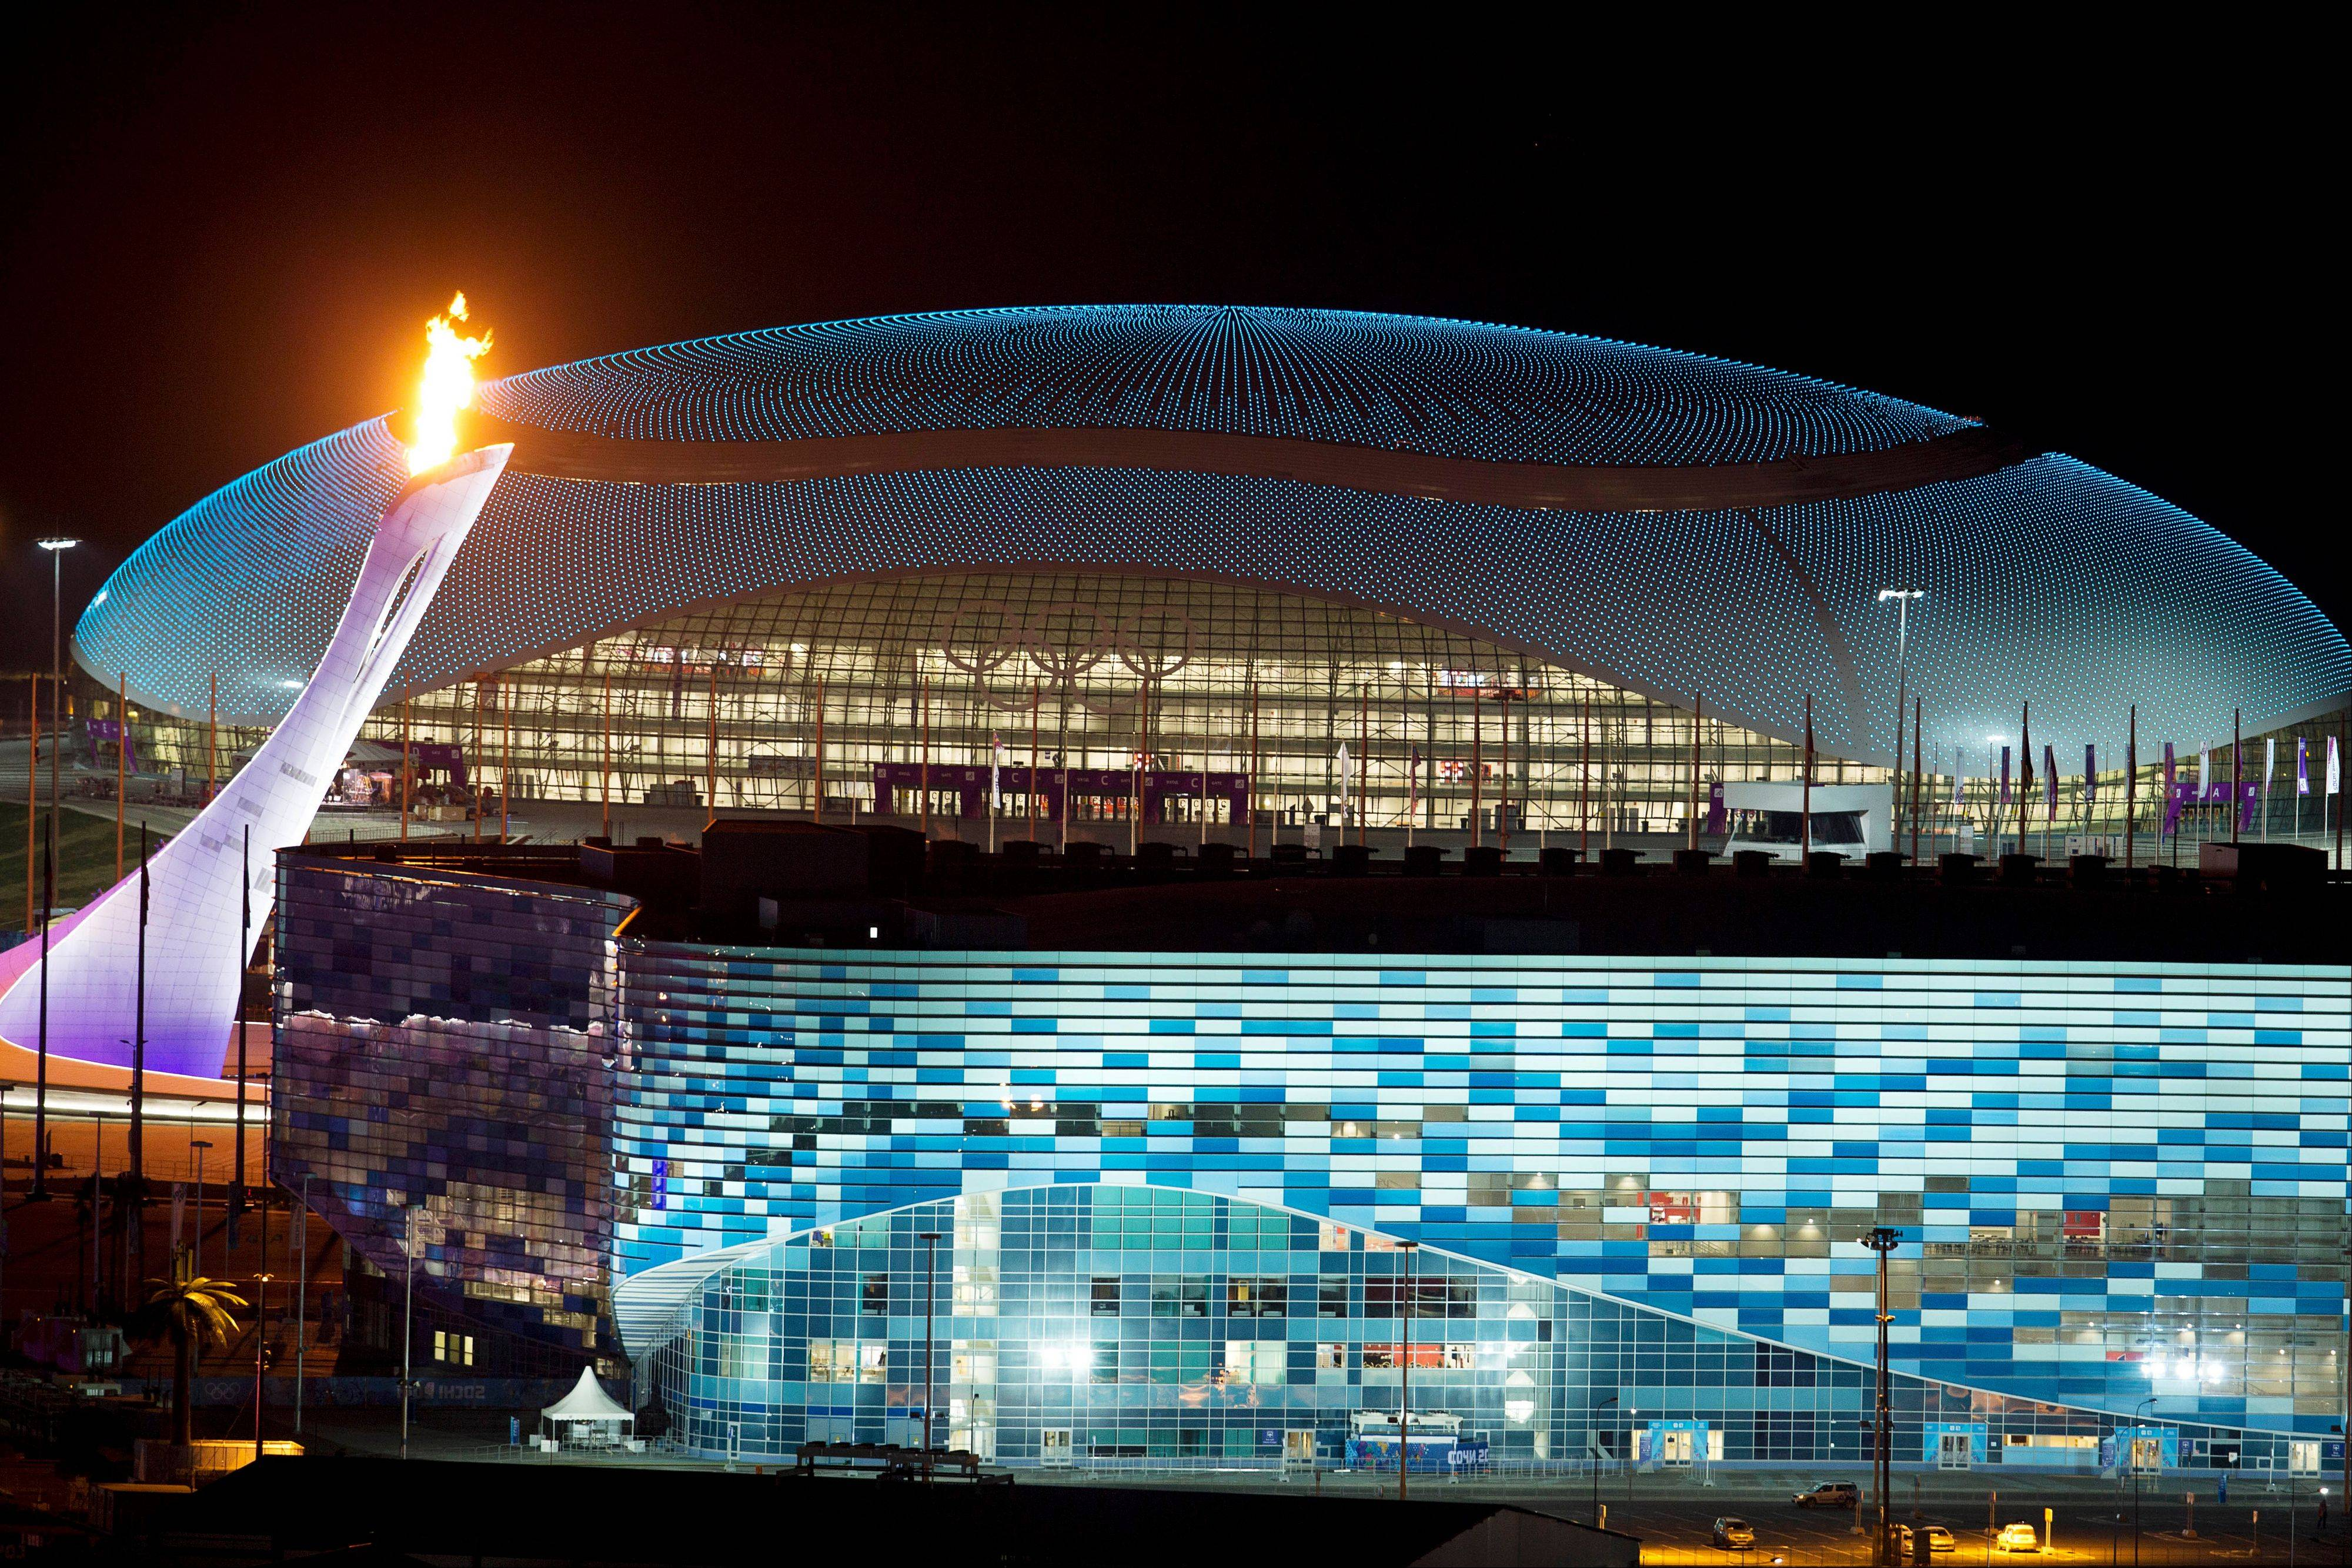 The Olympic Cauldron, left, is lit during a test between the Bolshoy Ice Dome, top, and the Iceberg Skating Palace, foreground, early Thursday morning, Feb. 6, 2014, in Sochi, Russia, prior to the start of the 2014 Winter Olympics.